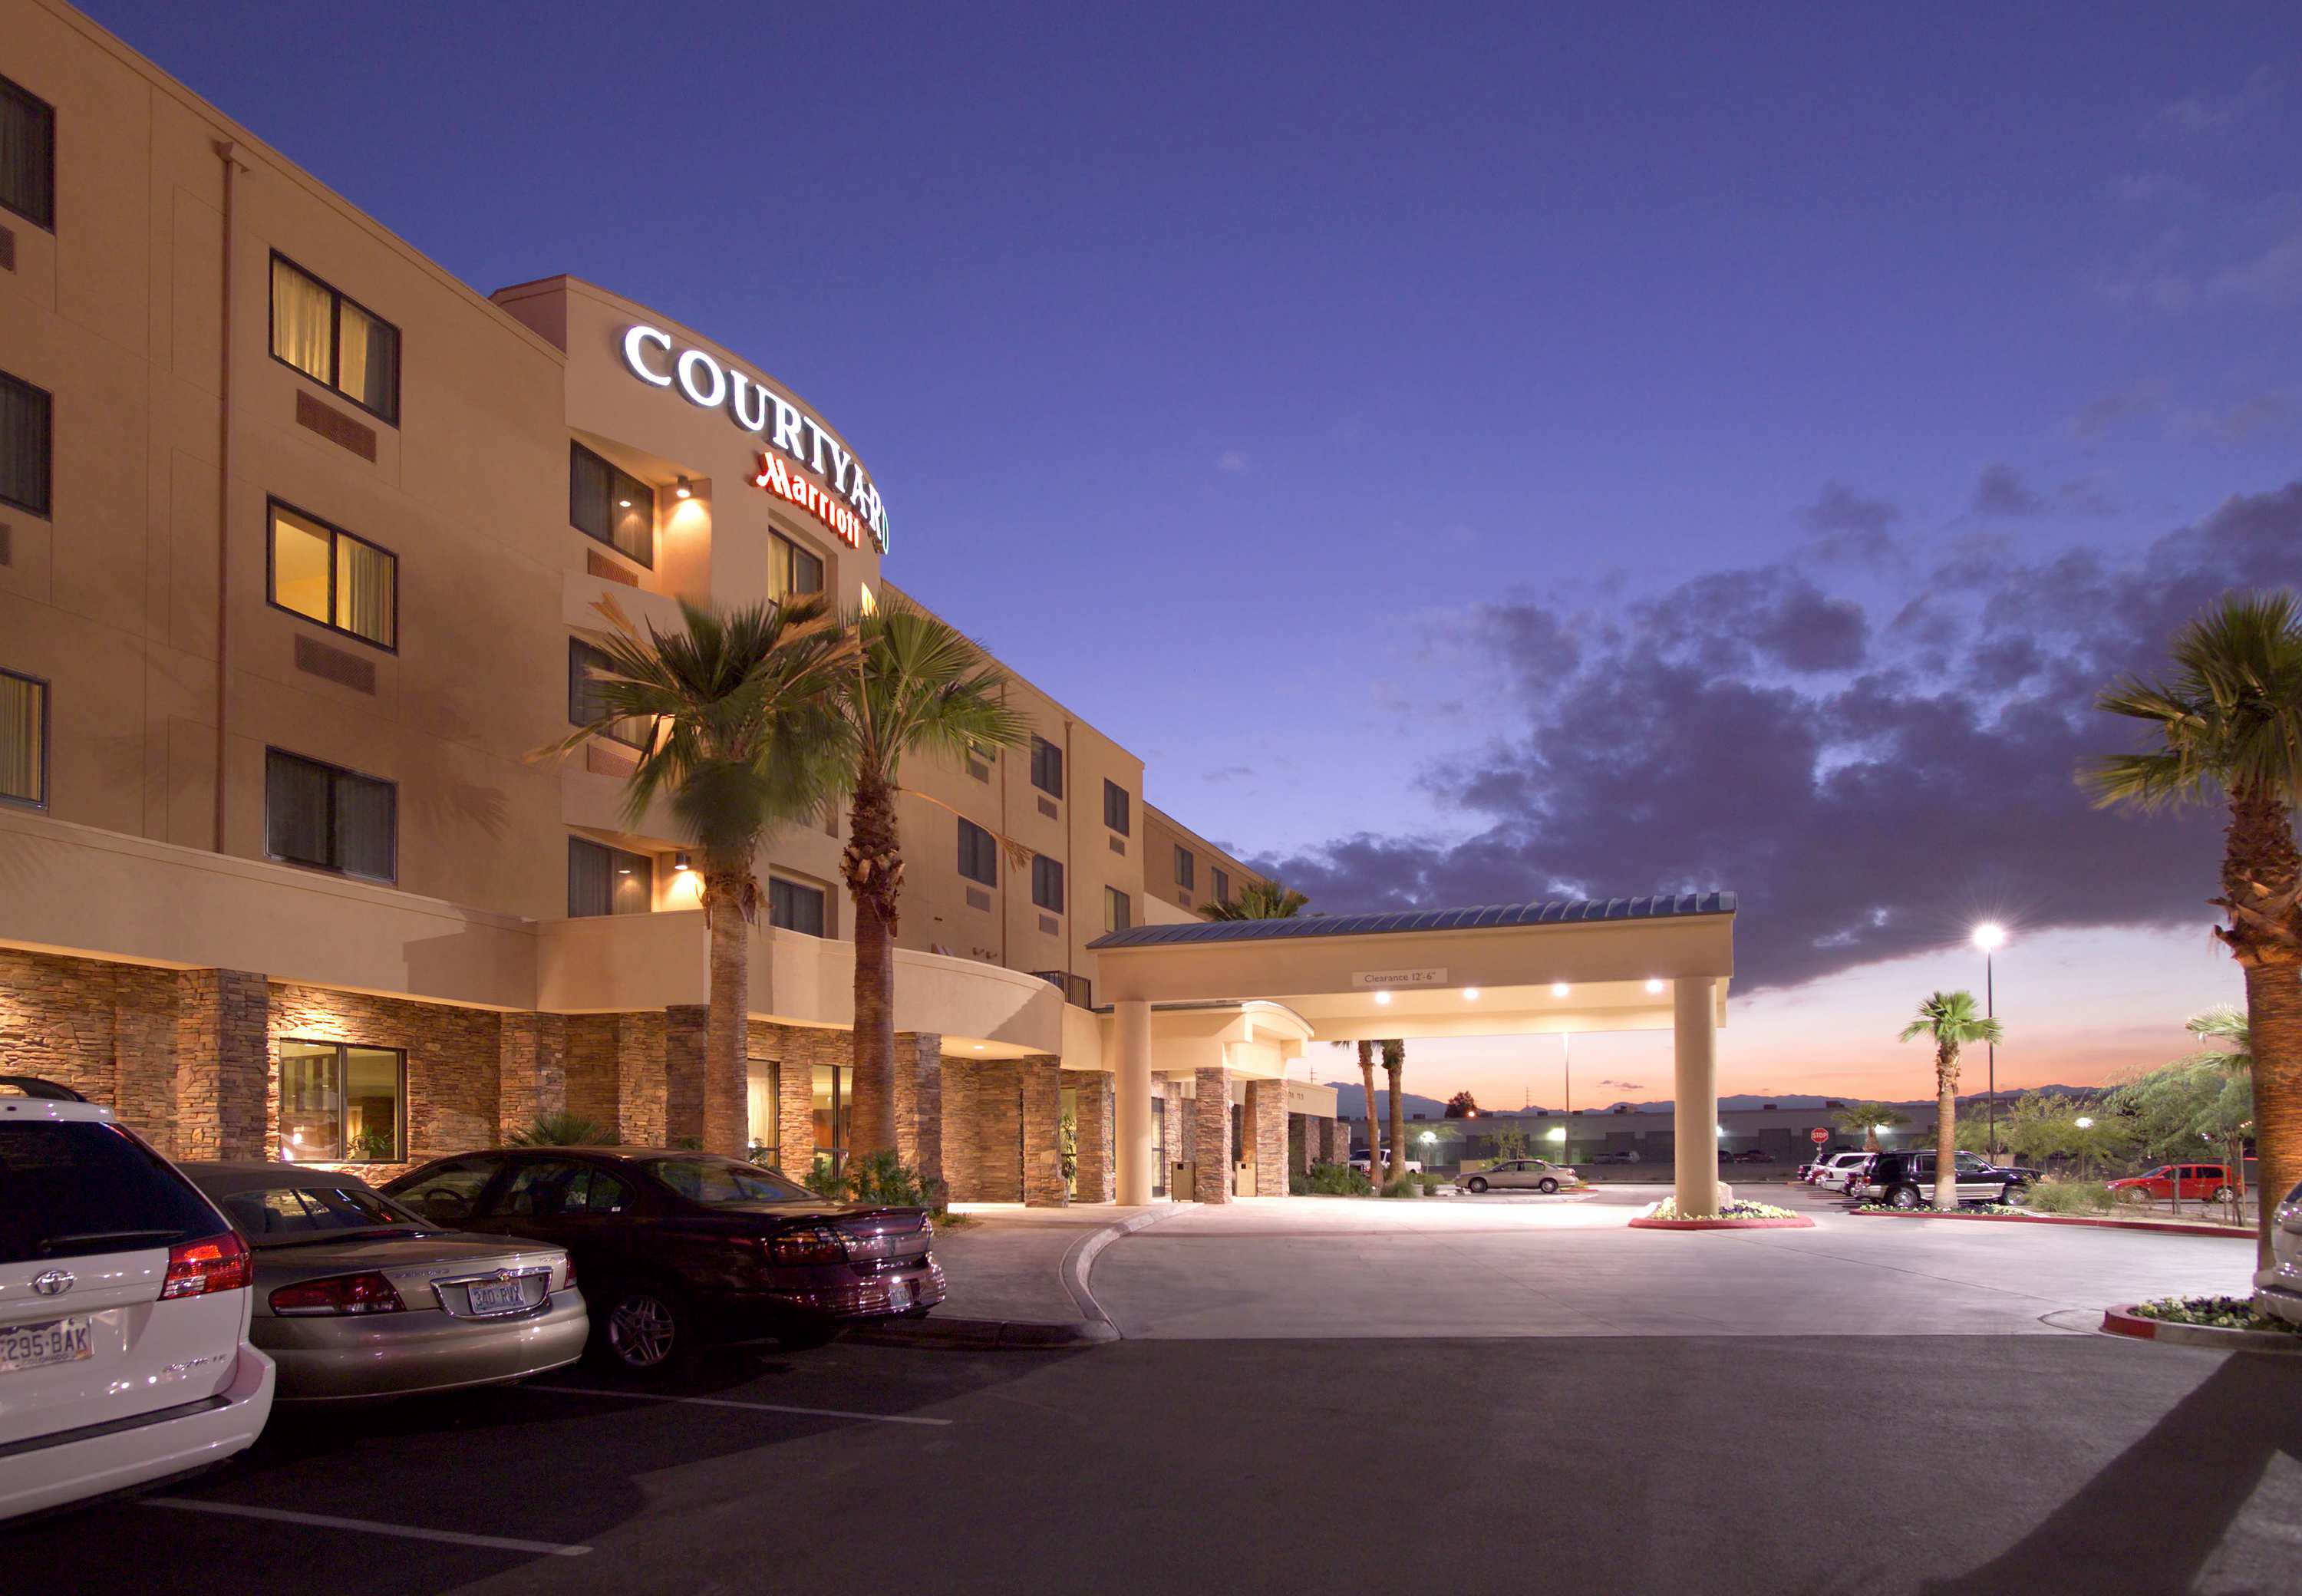 Courtyard by Marriott Las Vegas South image 10